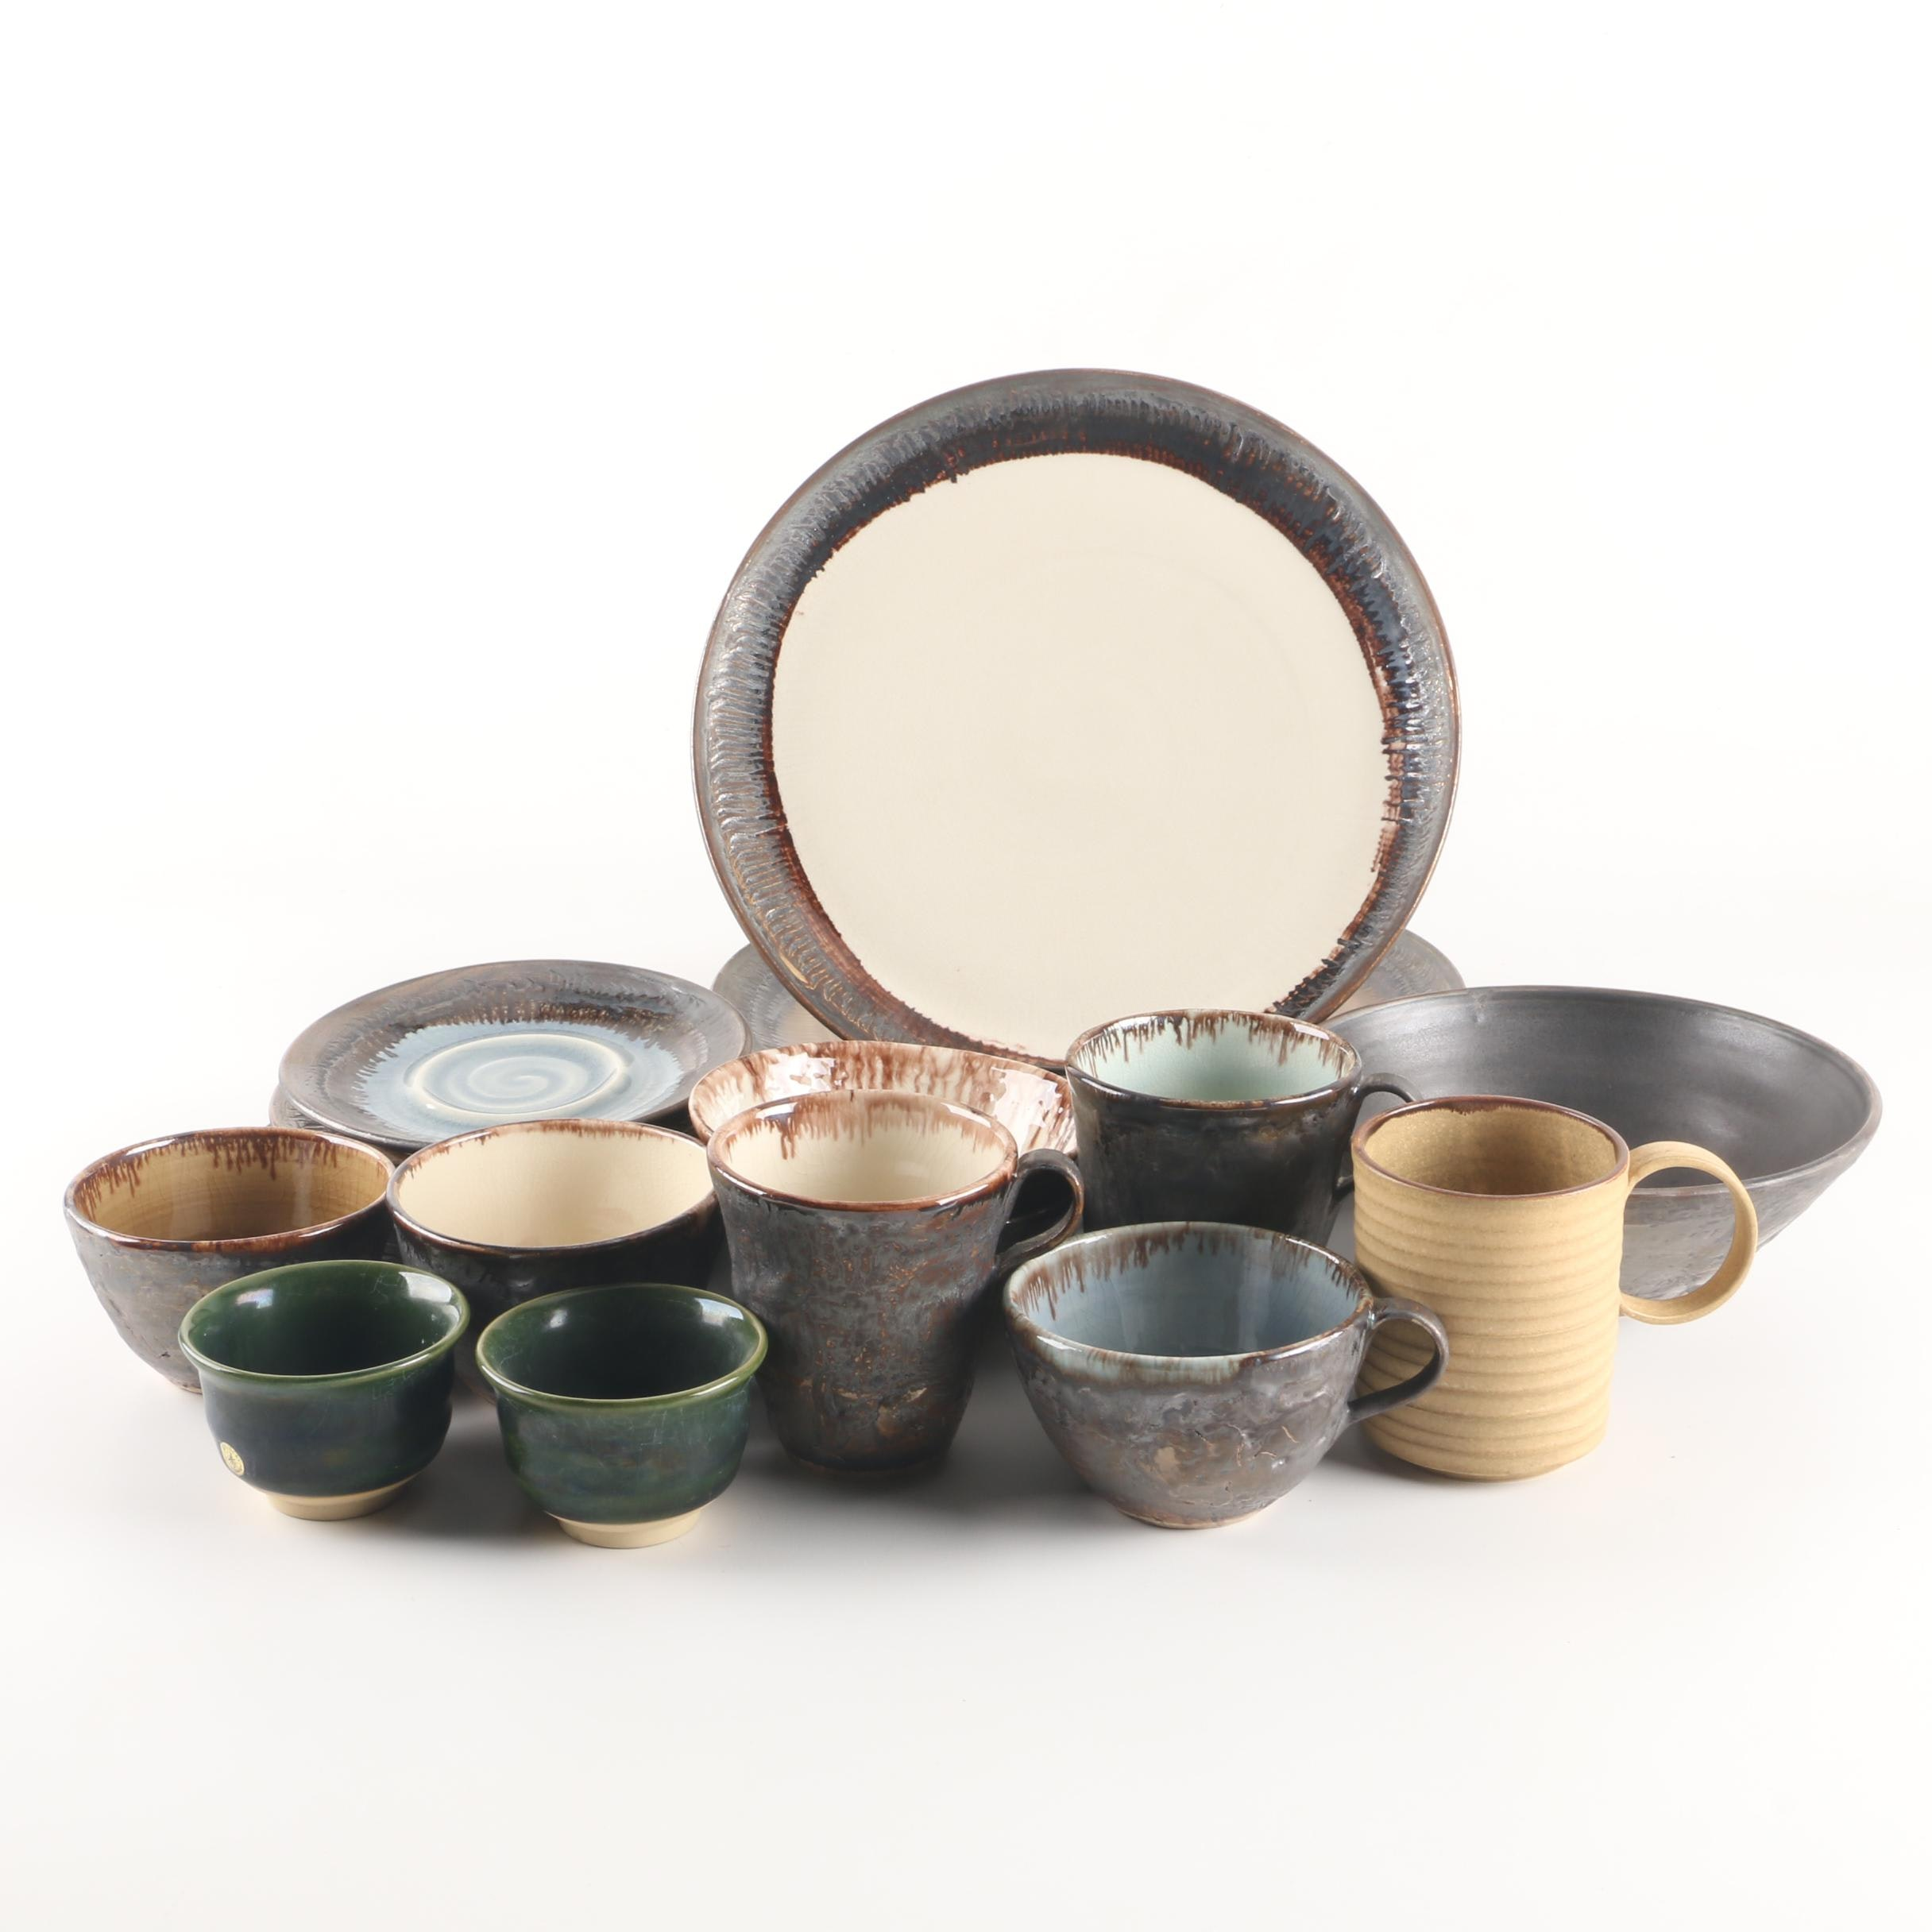 Wheel Thrown Stoneware Tableware and Cups Including Kotobuki